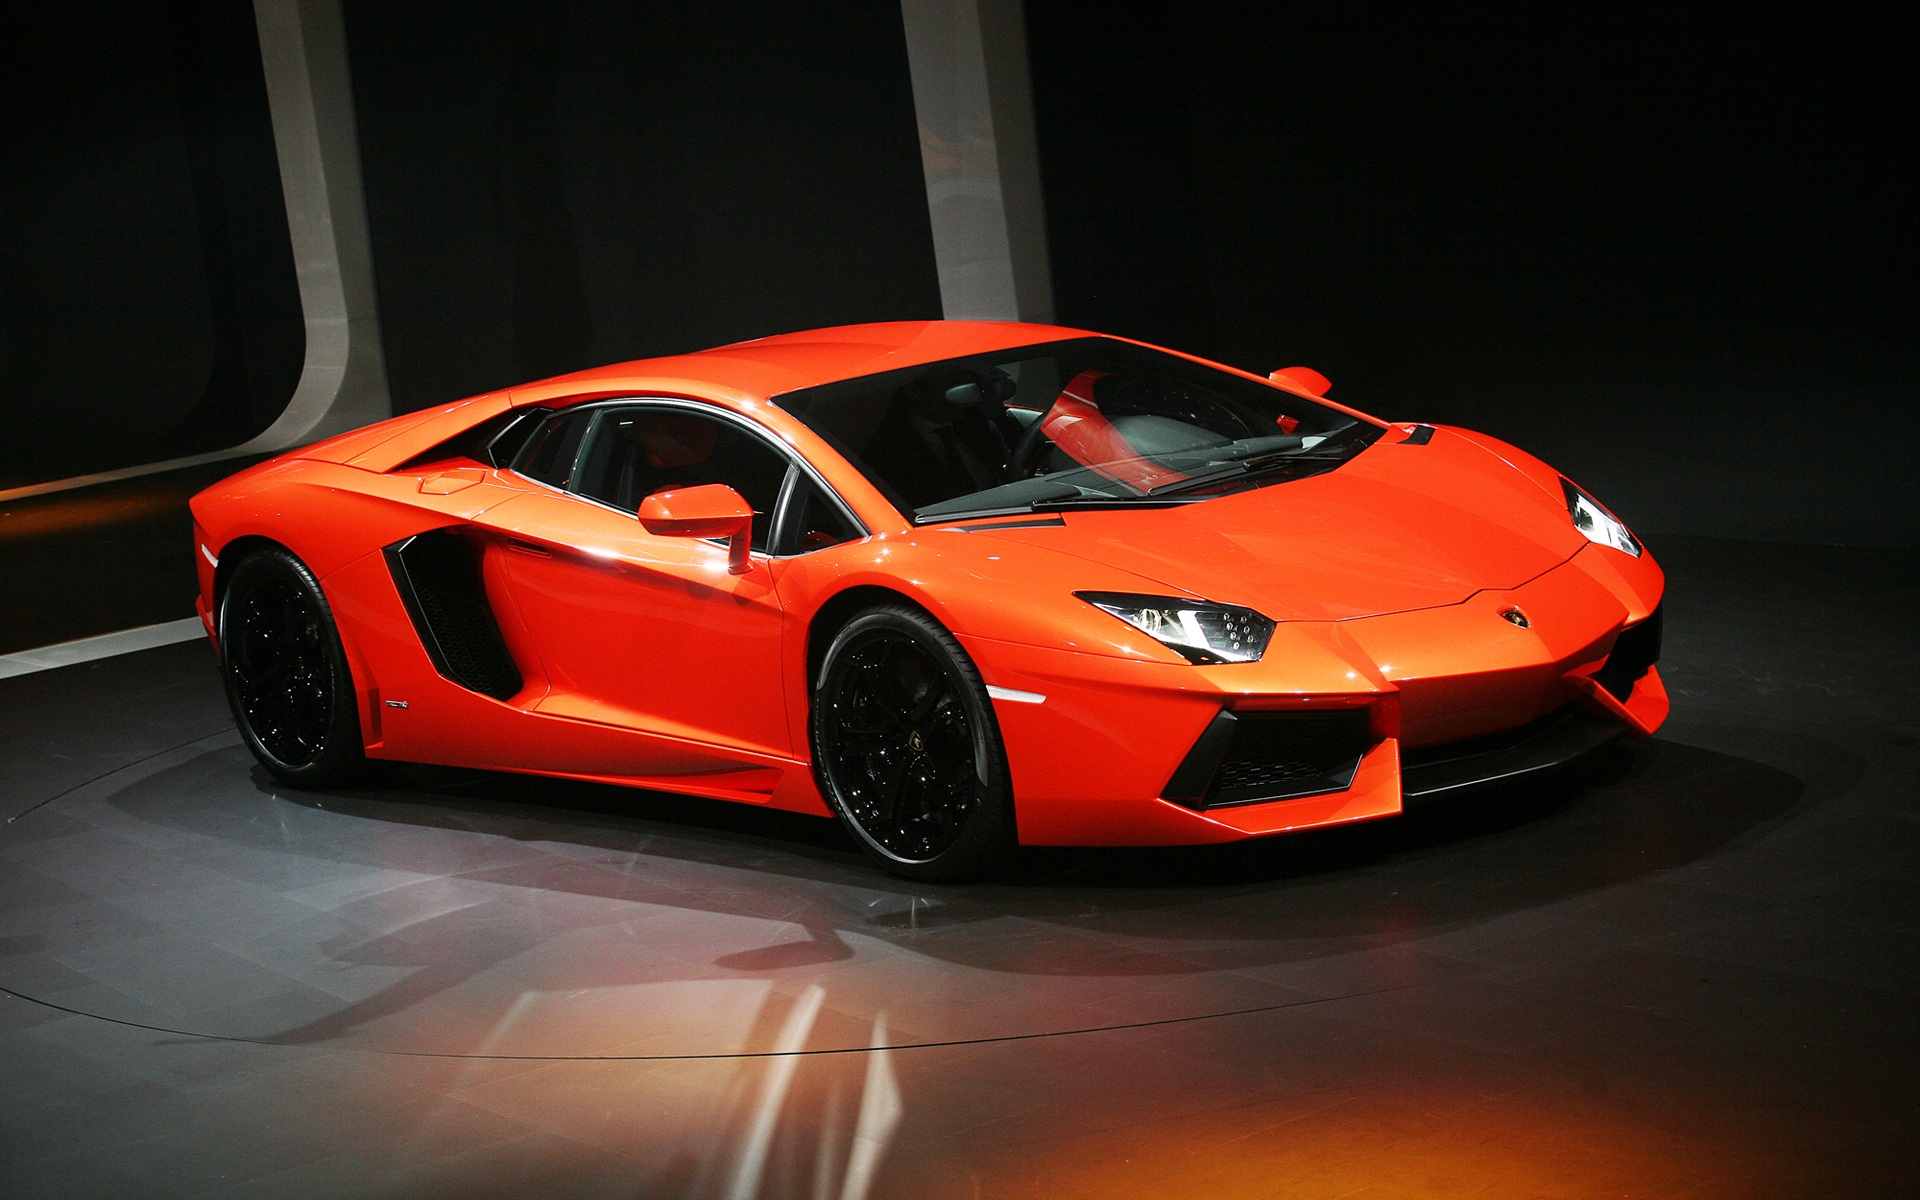 Lamborghini Aventador Wallpapers HD Wallpapers 1920x1200